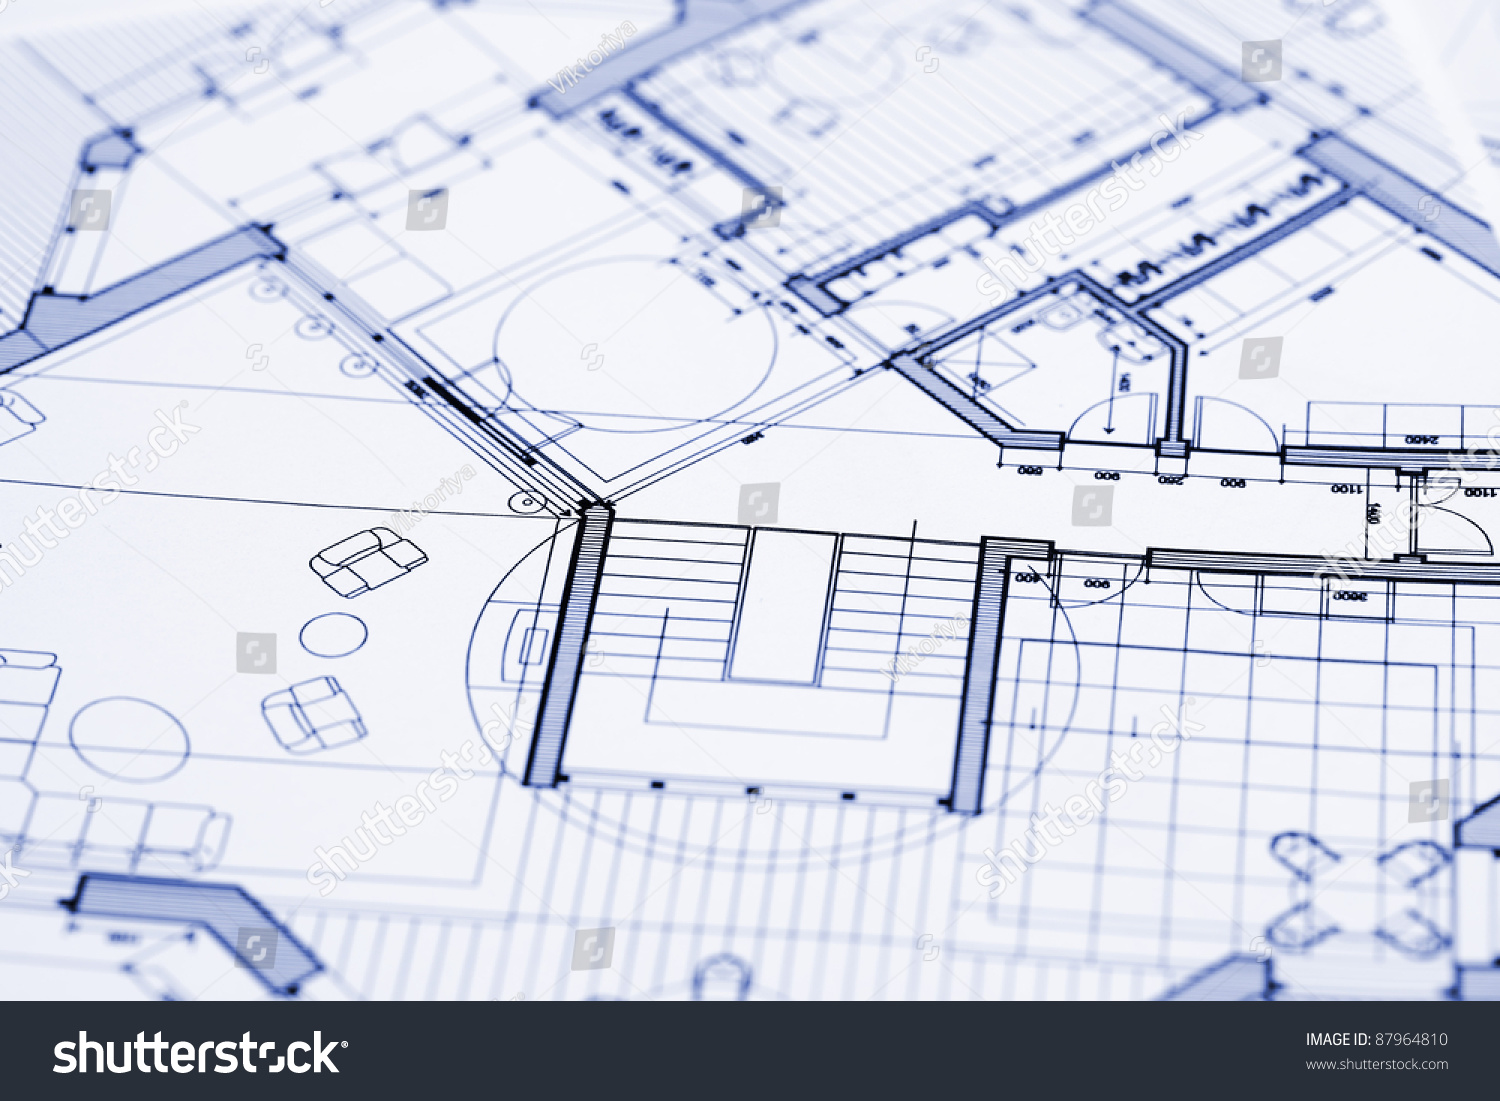 Blueprints professional architectural drawings stock photo for Architecture blueprint